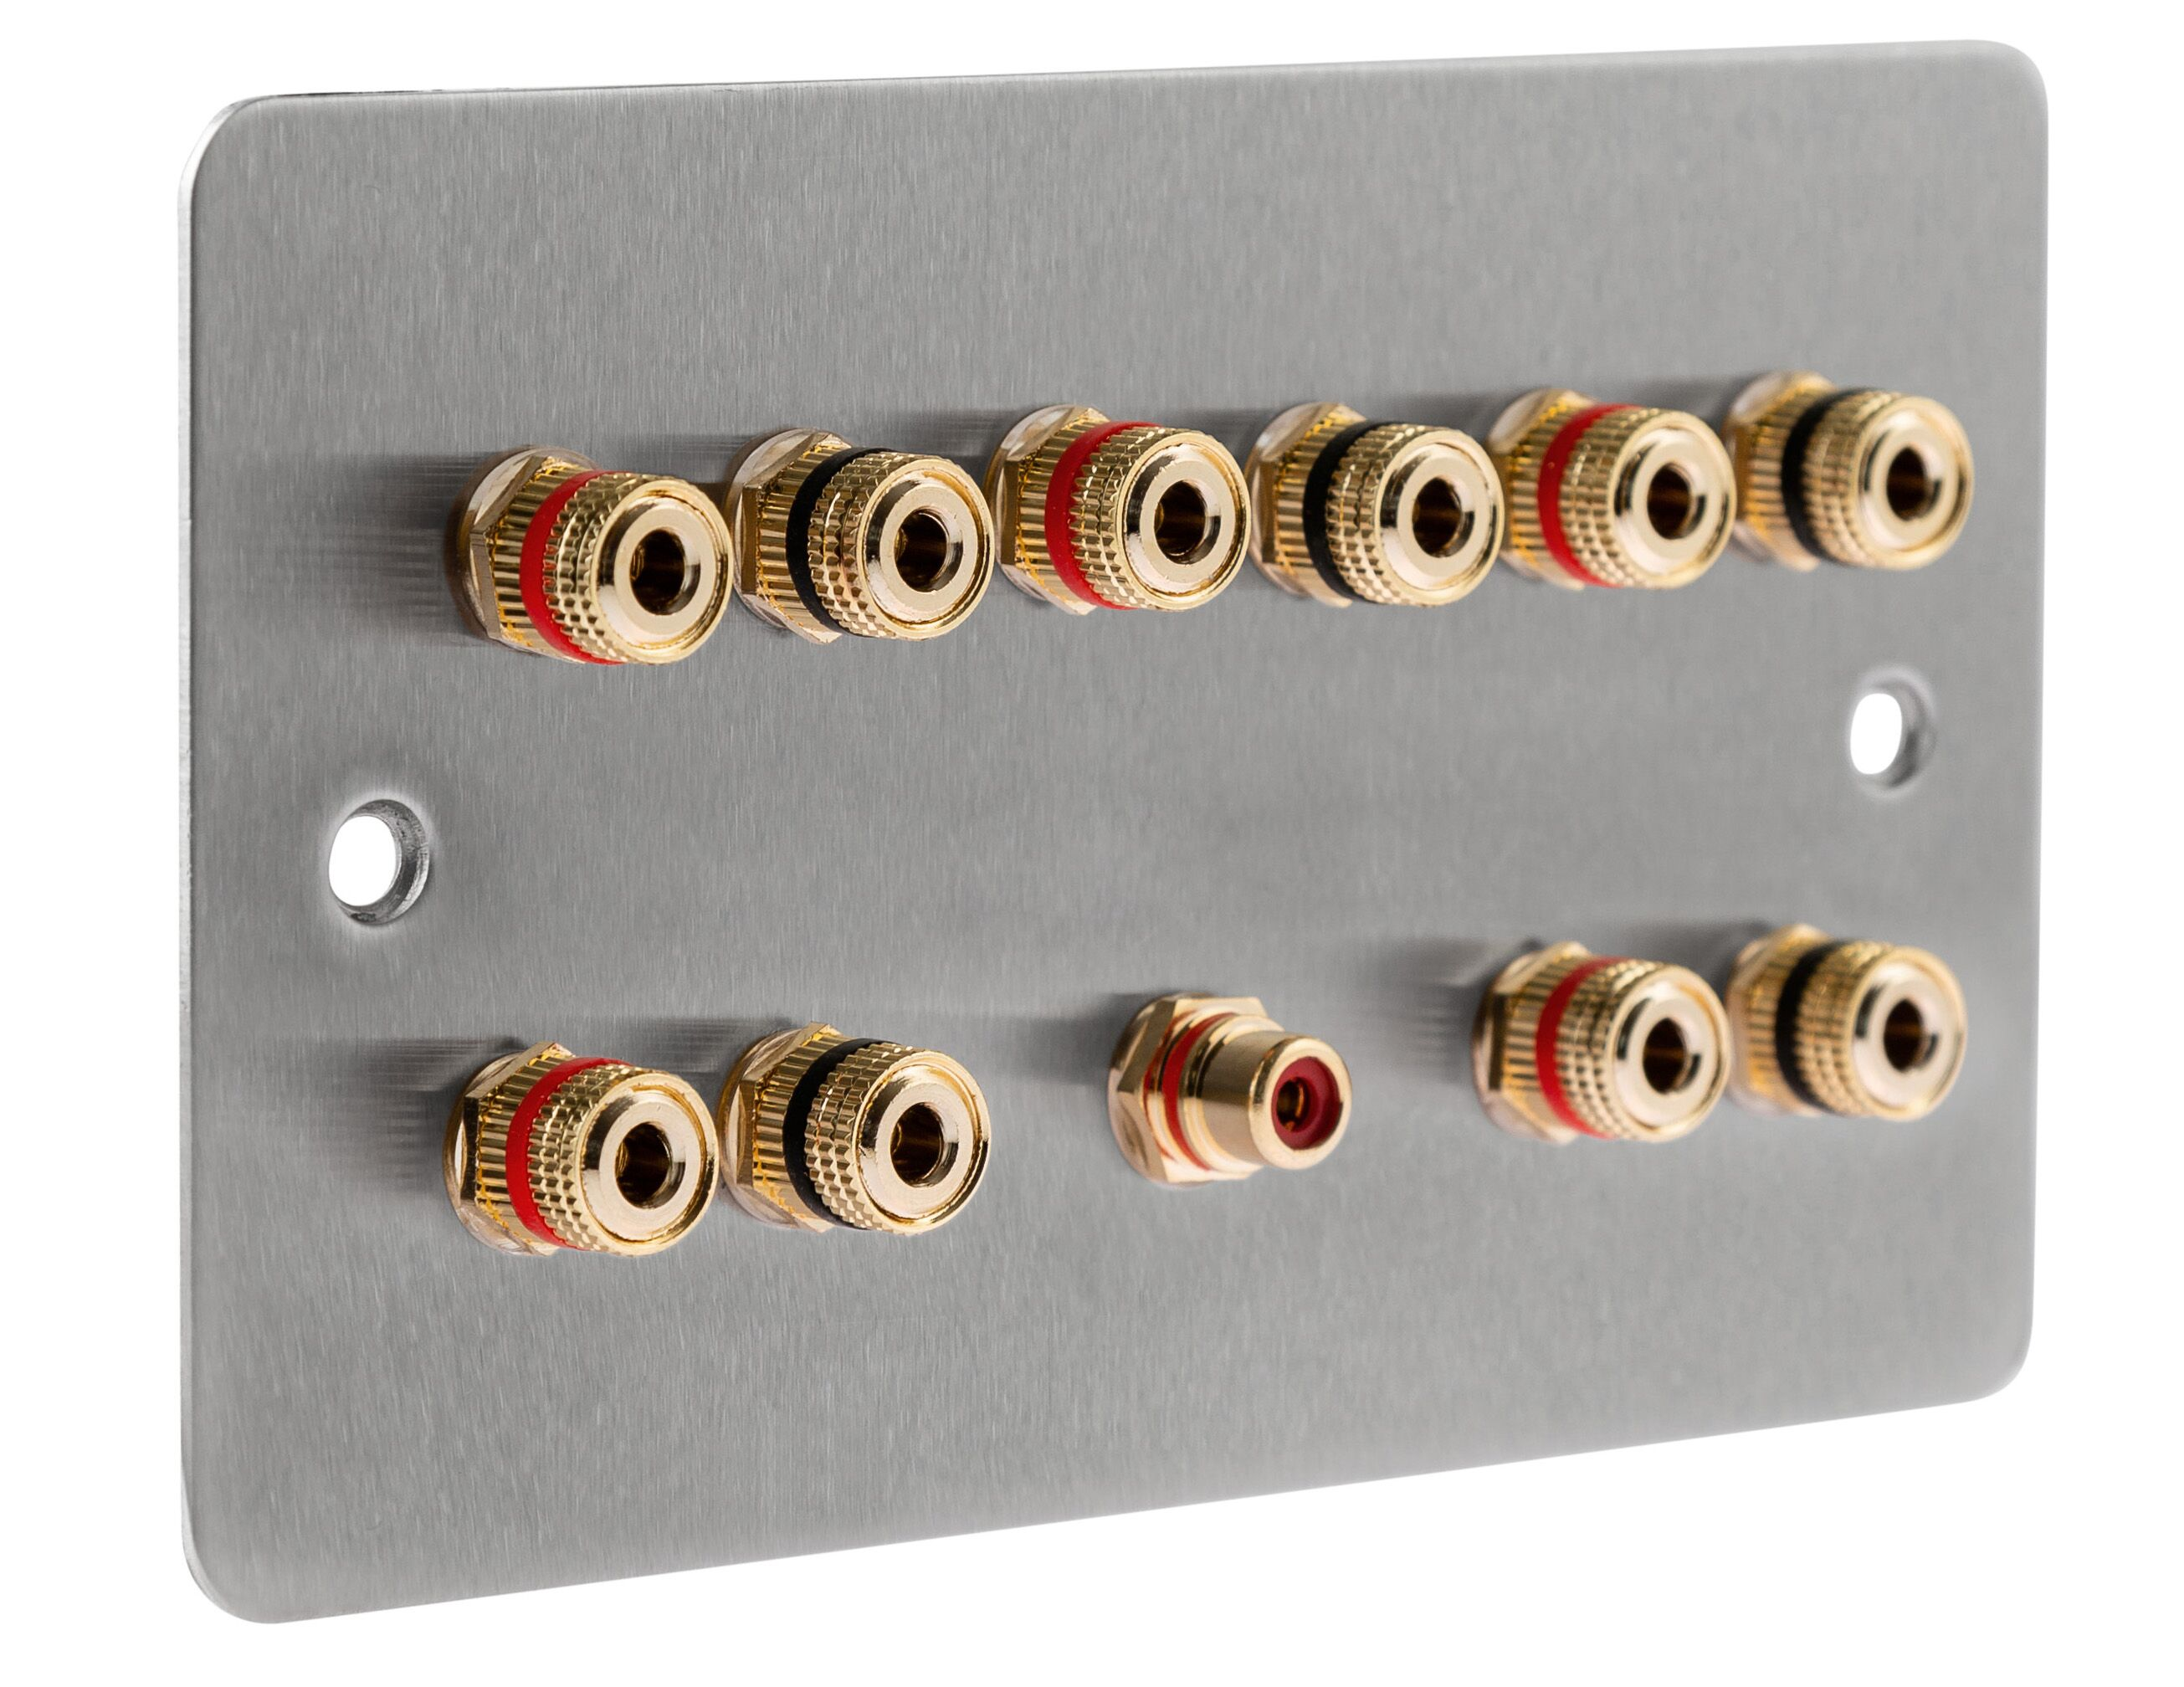 5.1 Speaker Wall Face Plate Complete Audio AV Surround Sound Kit audio Solder